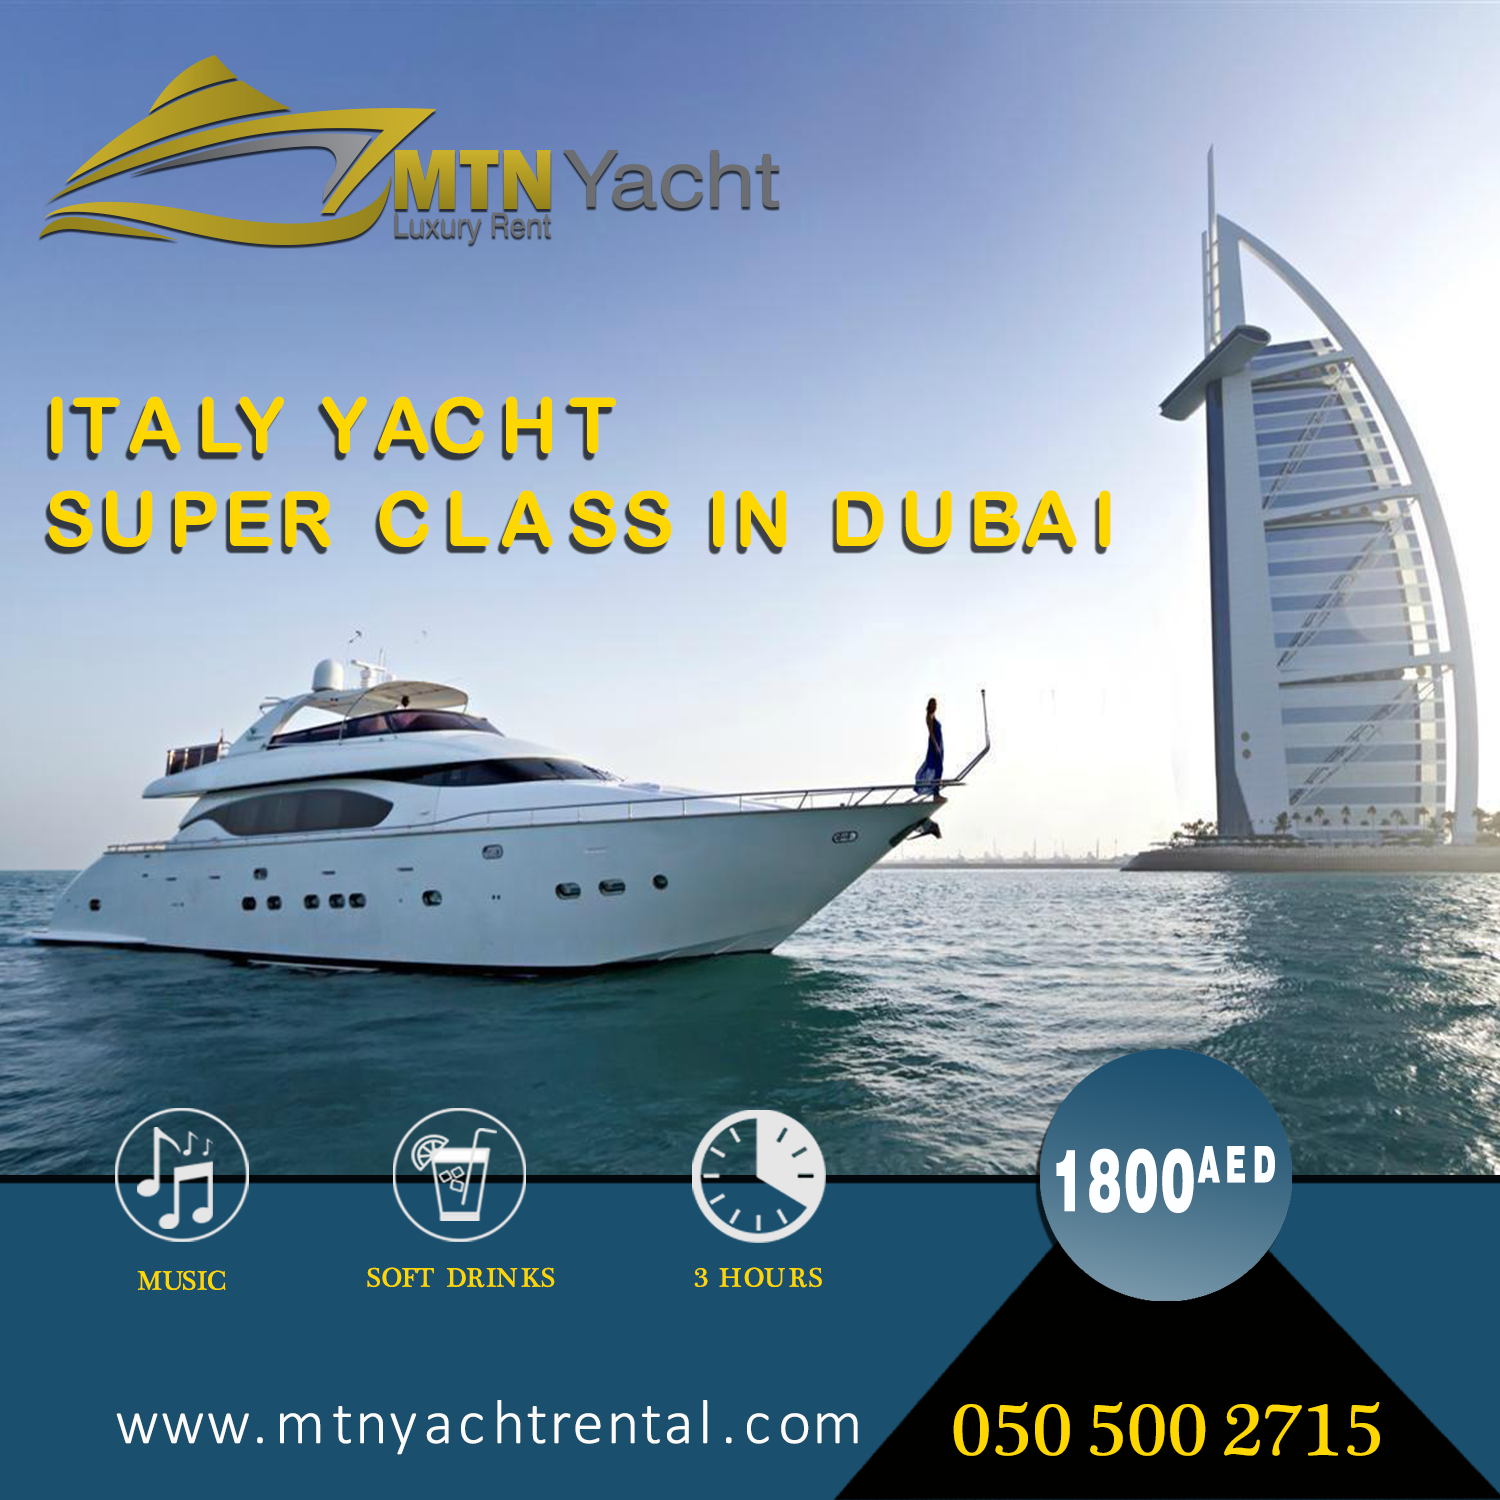 Luxury Yacht Tour Offer 1800aed+3h